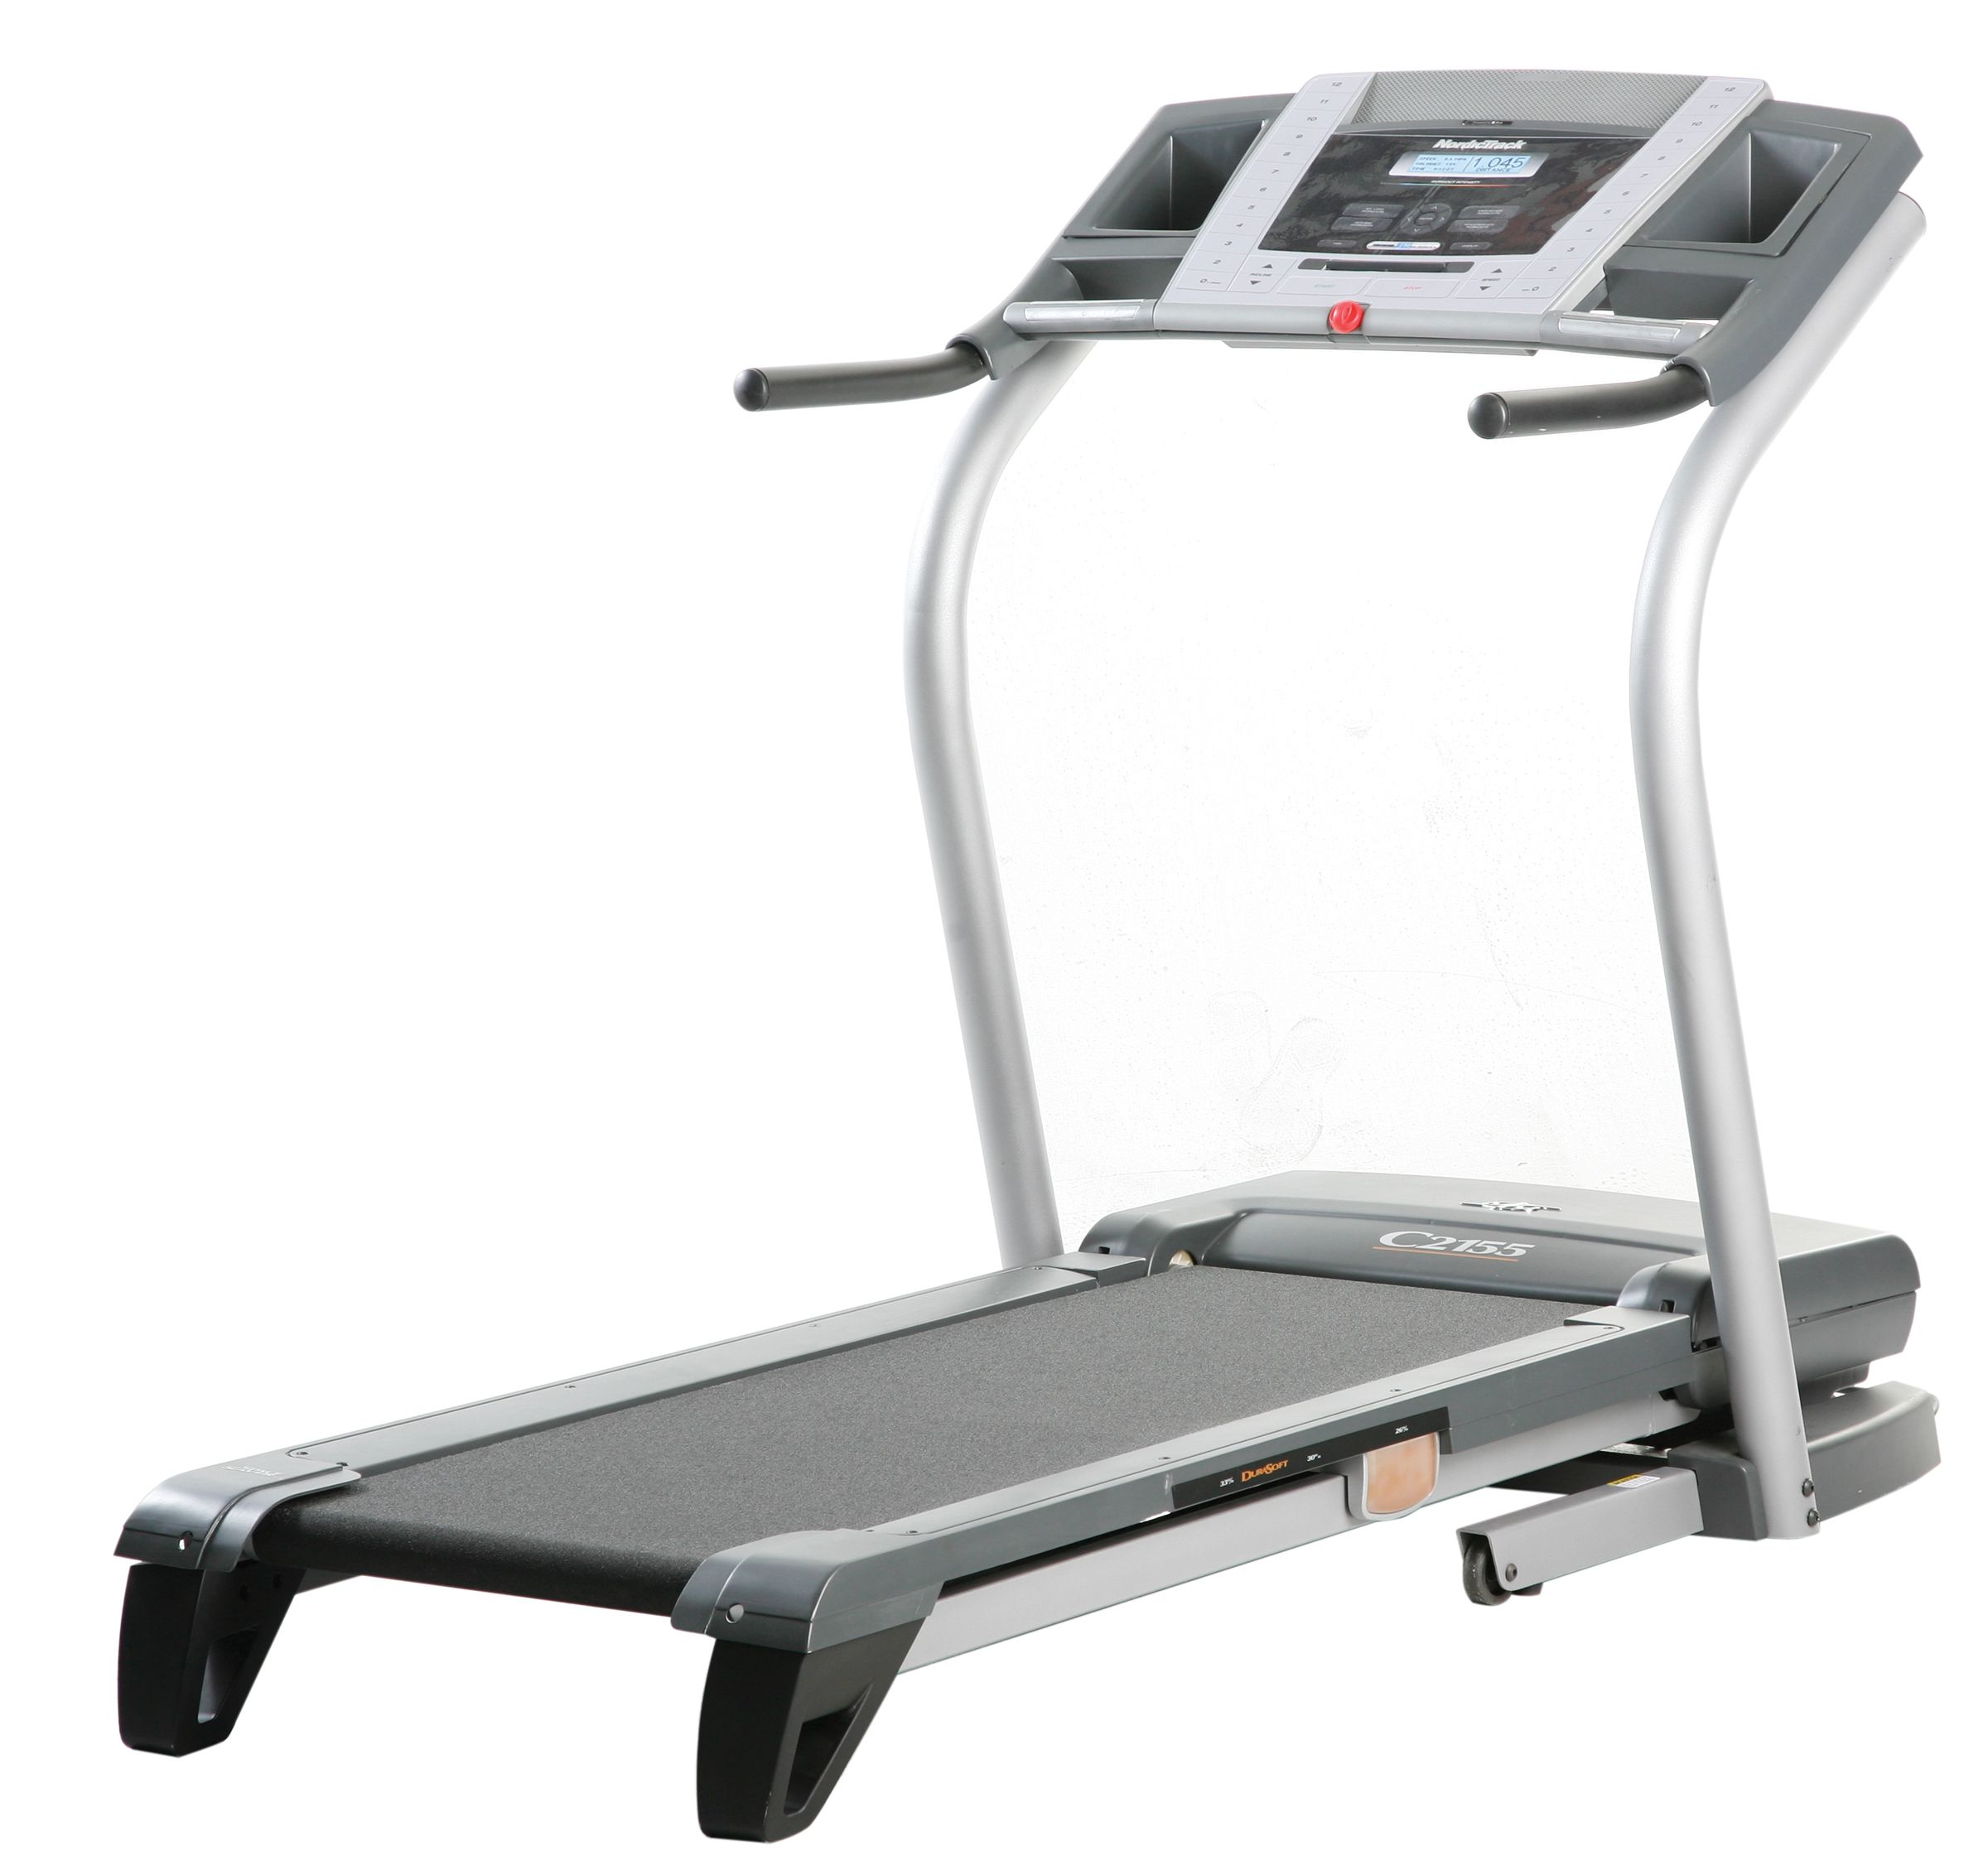 NordicTrack C2155 Treadmill Sears Outlet